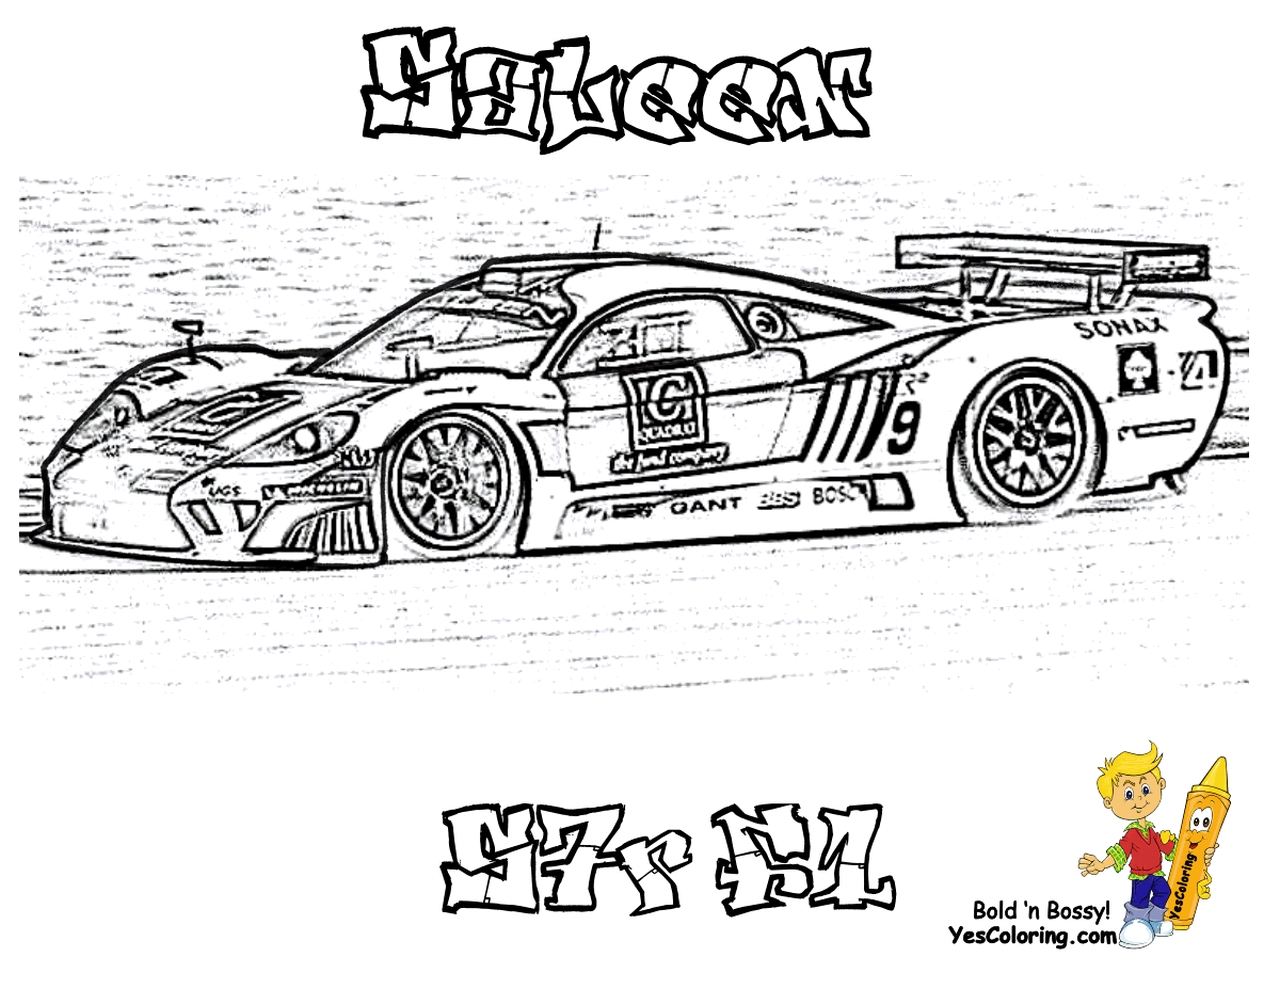 Get This Saleen Nascar Racing Car Coloring Pages For Boys 45619